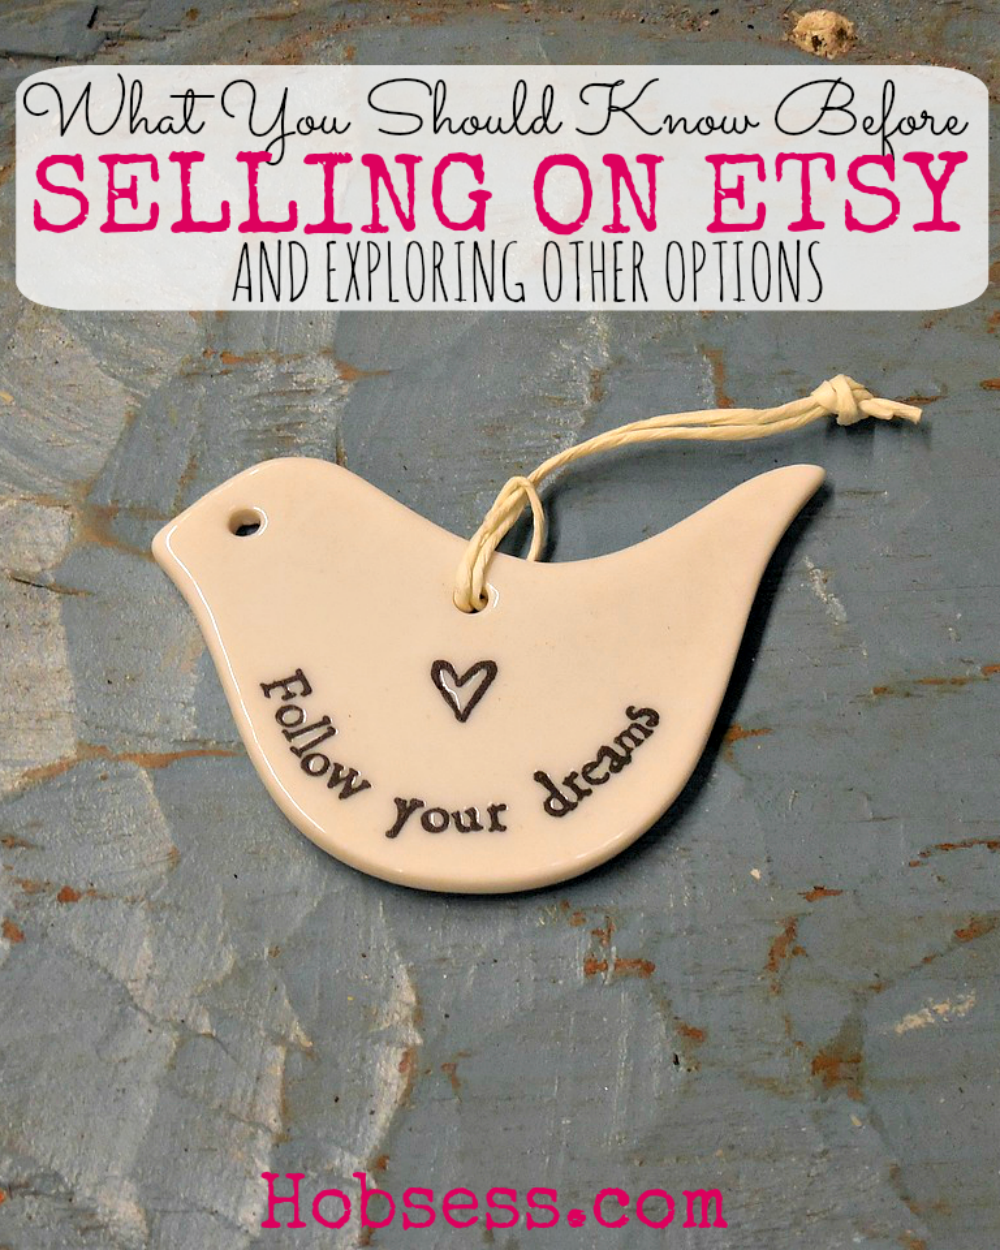 Etsy is a great place for artists to sell their products. However, there are several things you should know before selling on Etsy. Check out all the other options before making this very important decision.